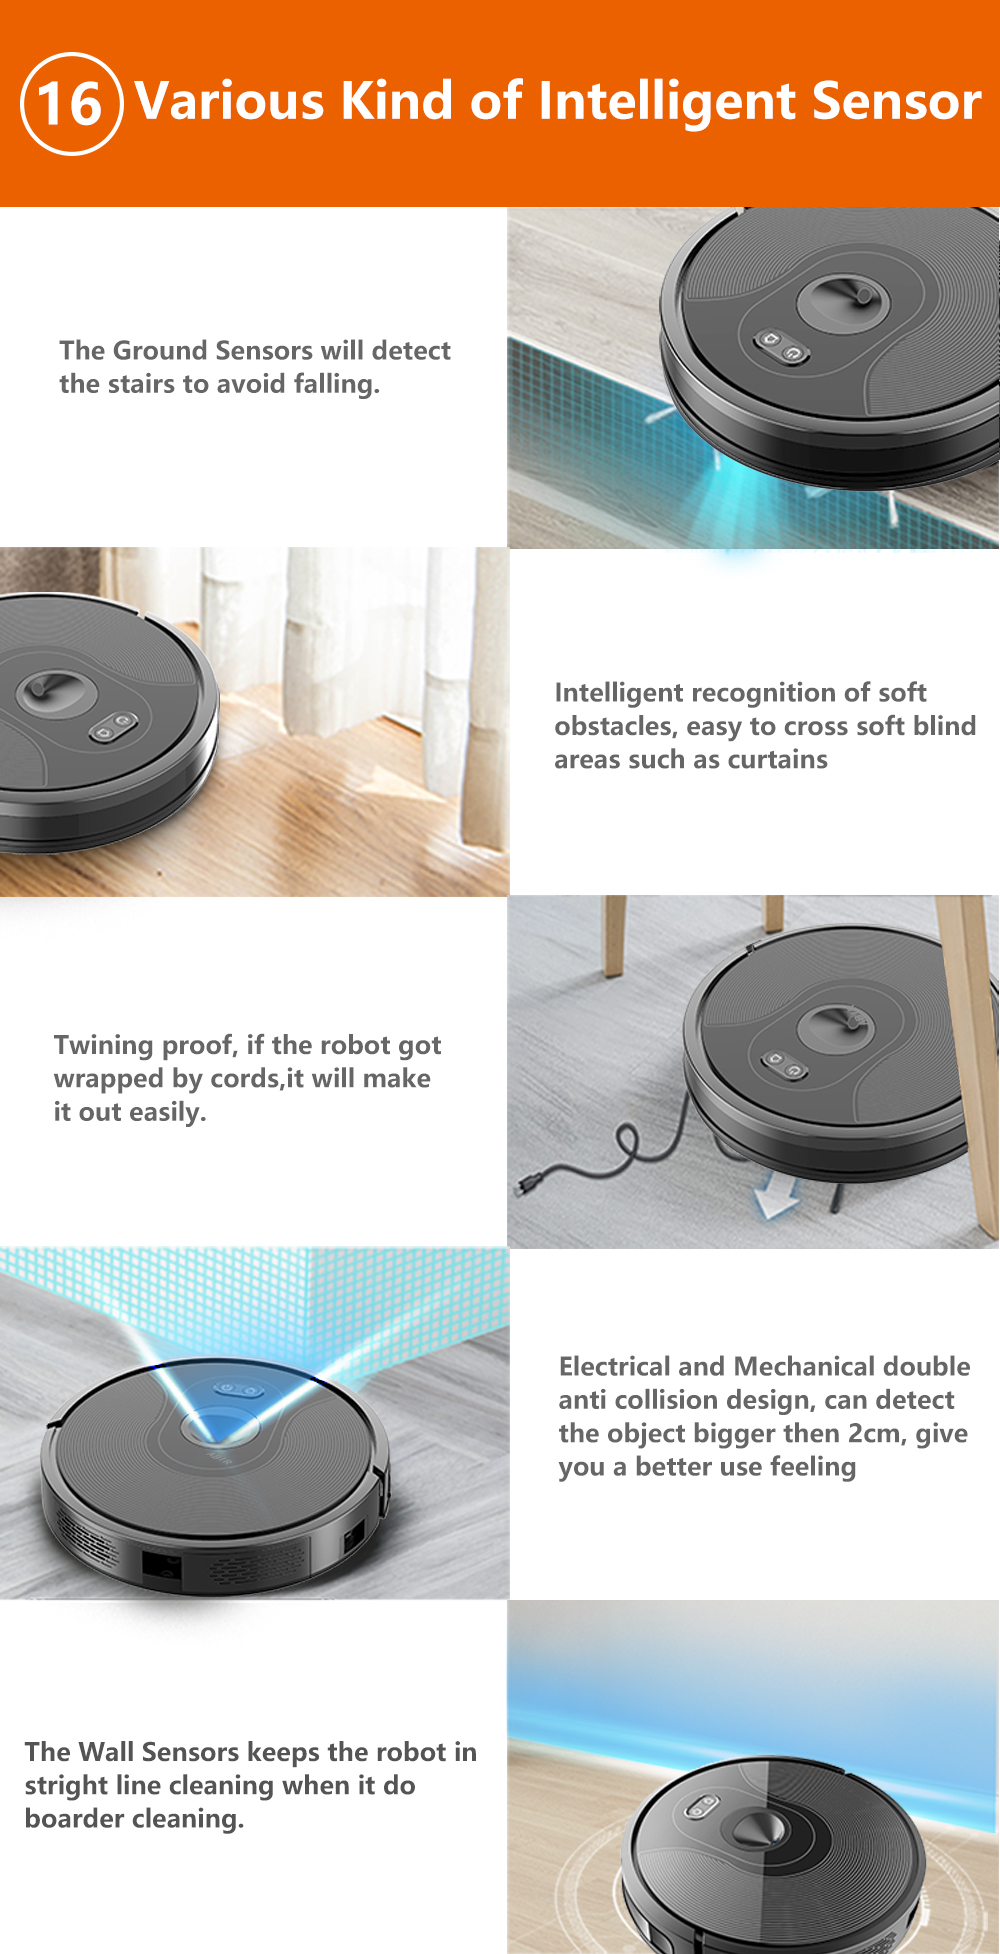 H17c39868f6e2413fa51852cae652d920S ABIR X6 Robot Vacuum Cleaner with Camera Navigation,WIFI APP controlled,Breakpoint Continue Cleaning,Draw Cleaning Area,Save Map